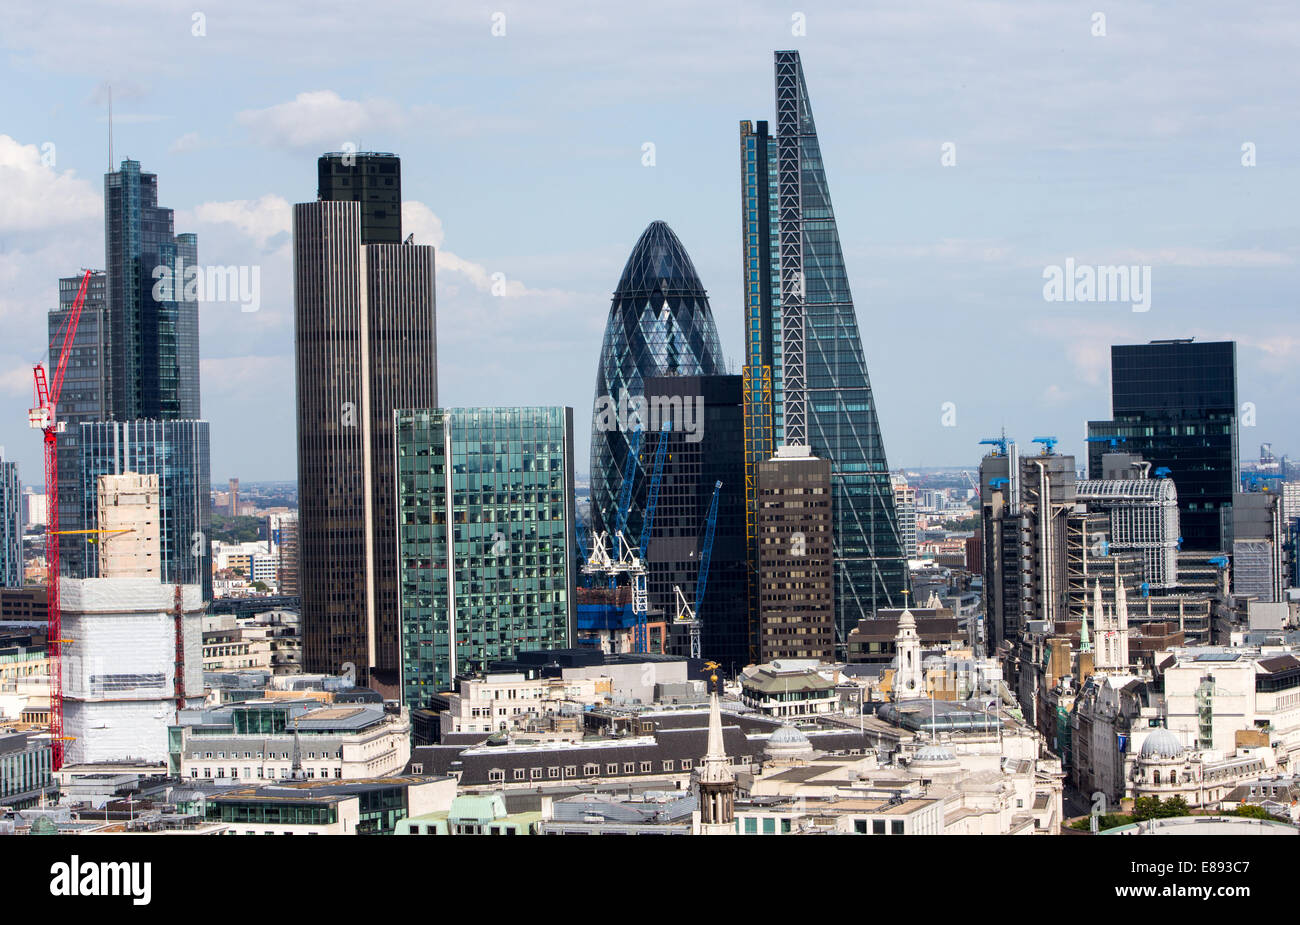 The City of London showing Tower 42,the Gherkin and the Cheesegrater - Stock Image